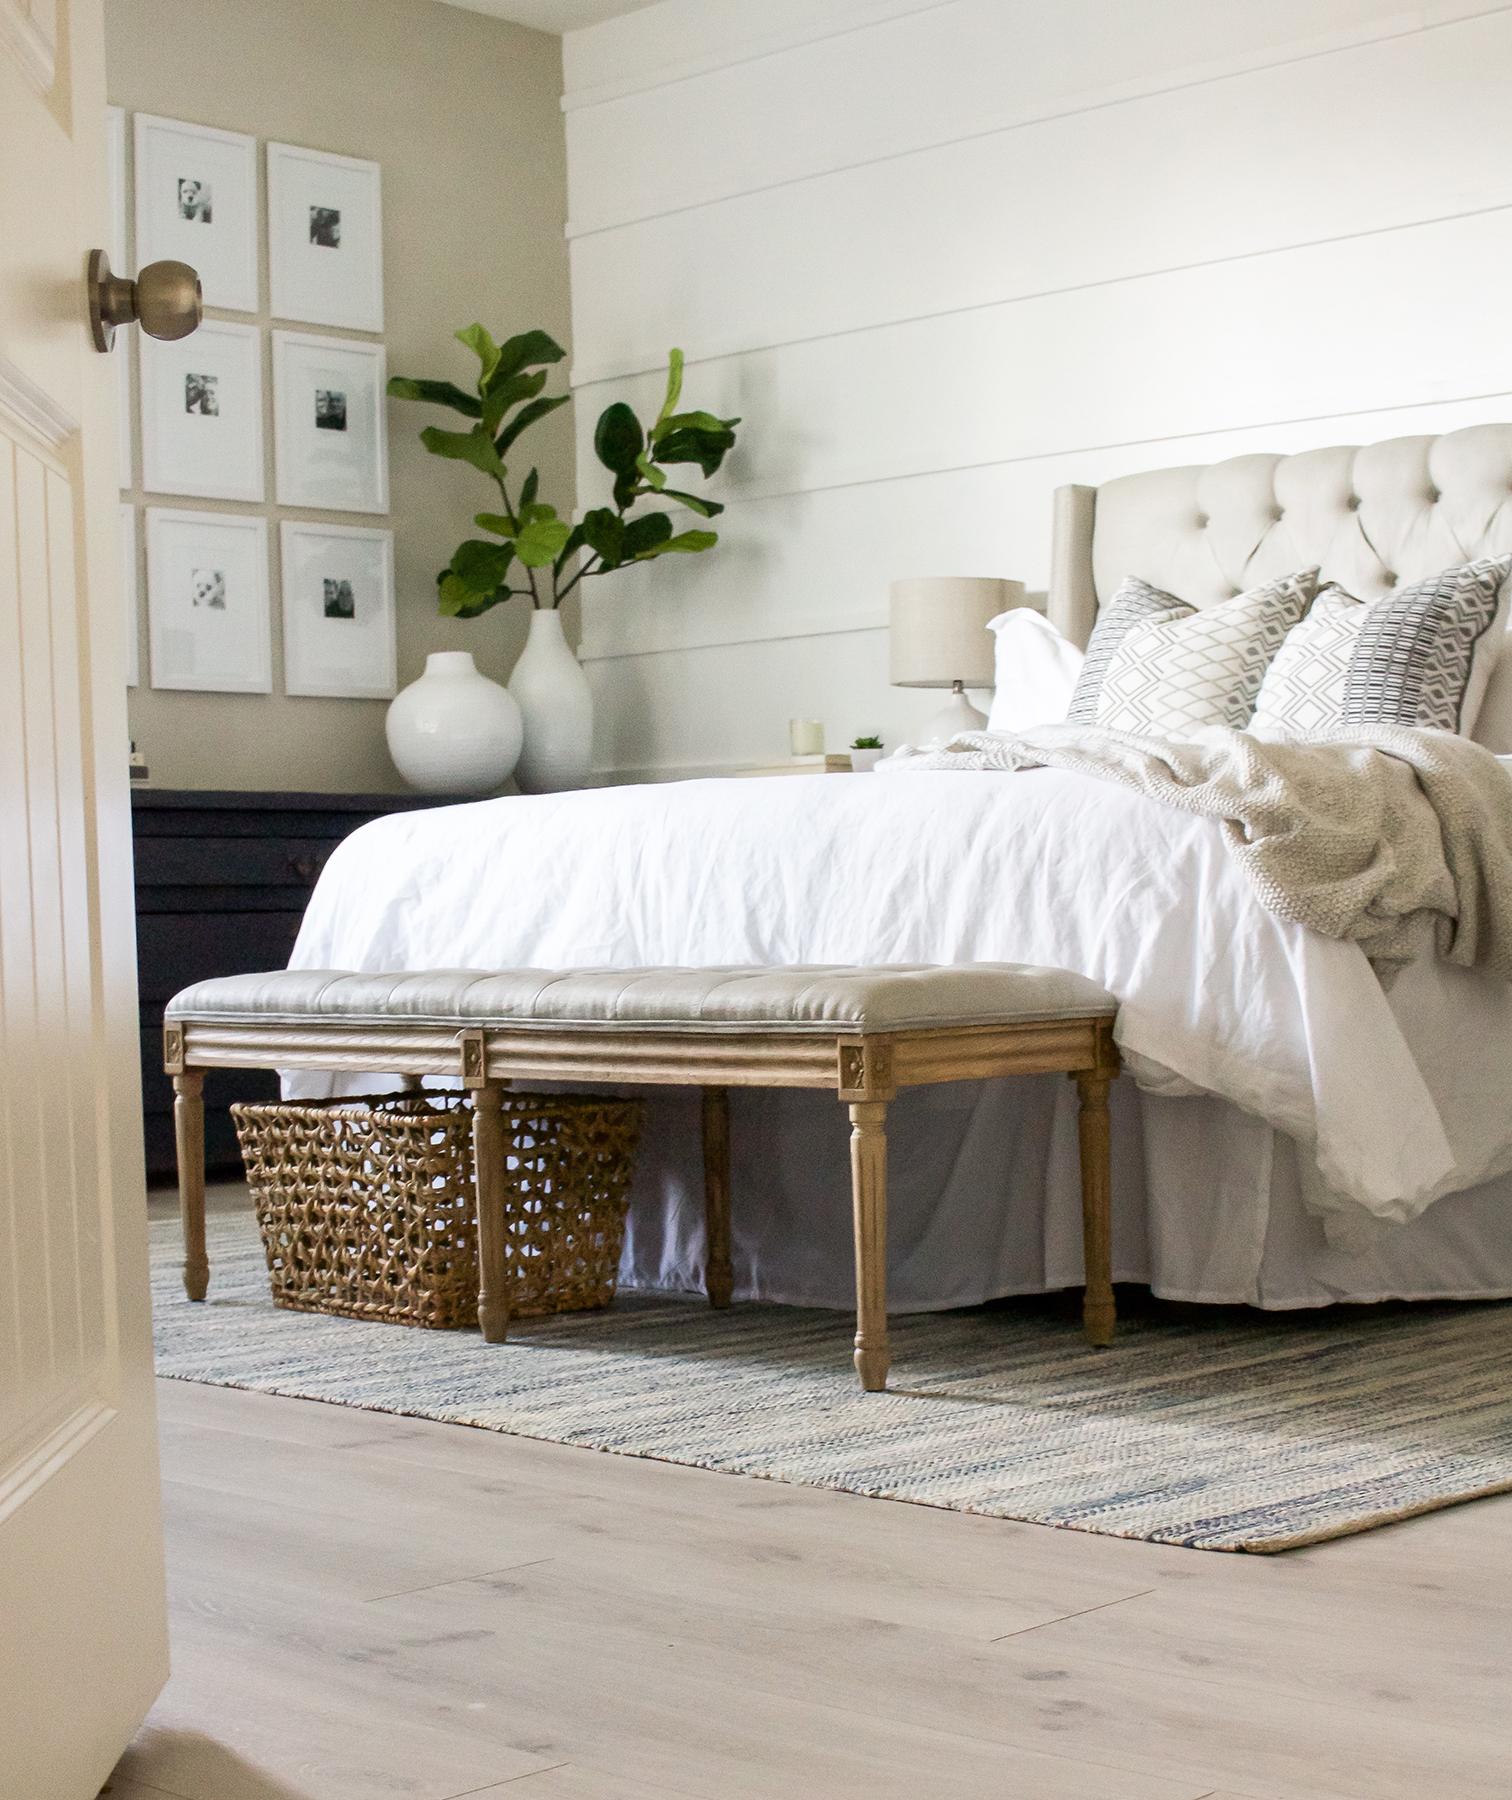 Bench at end of bed